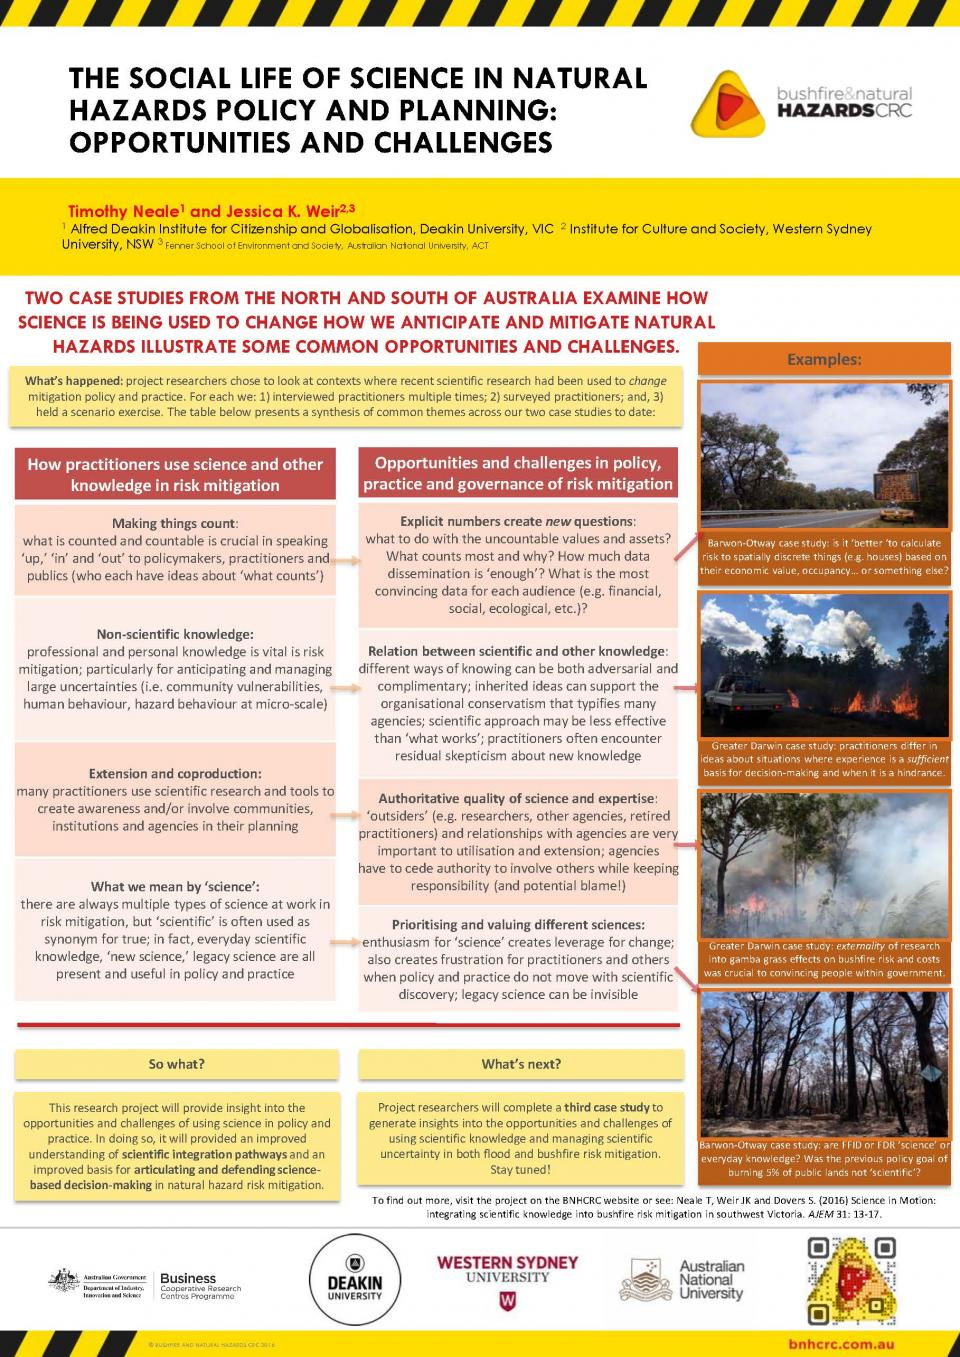 Timothy Neale Conference Poster 2016